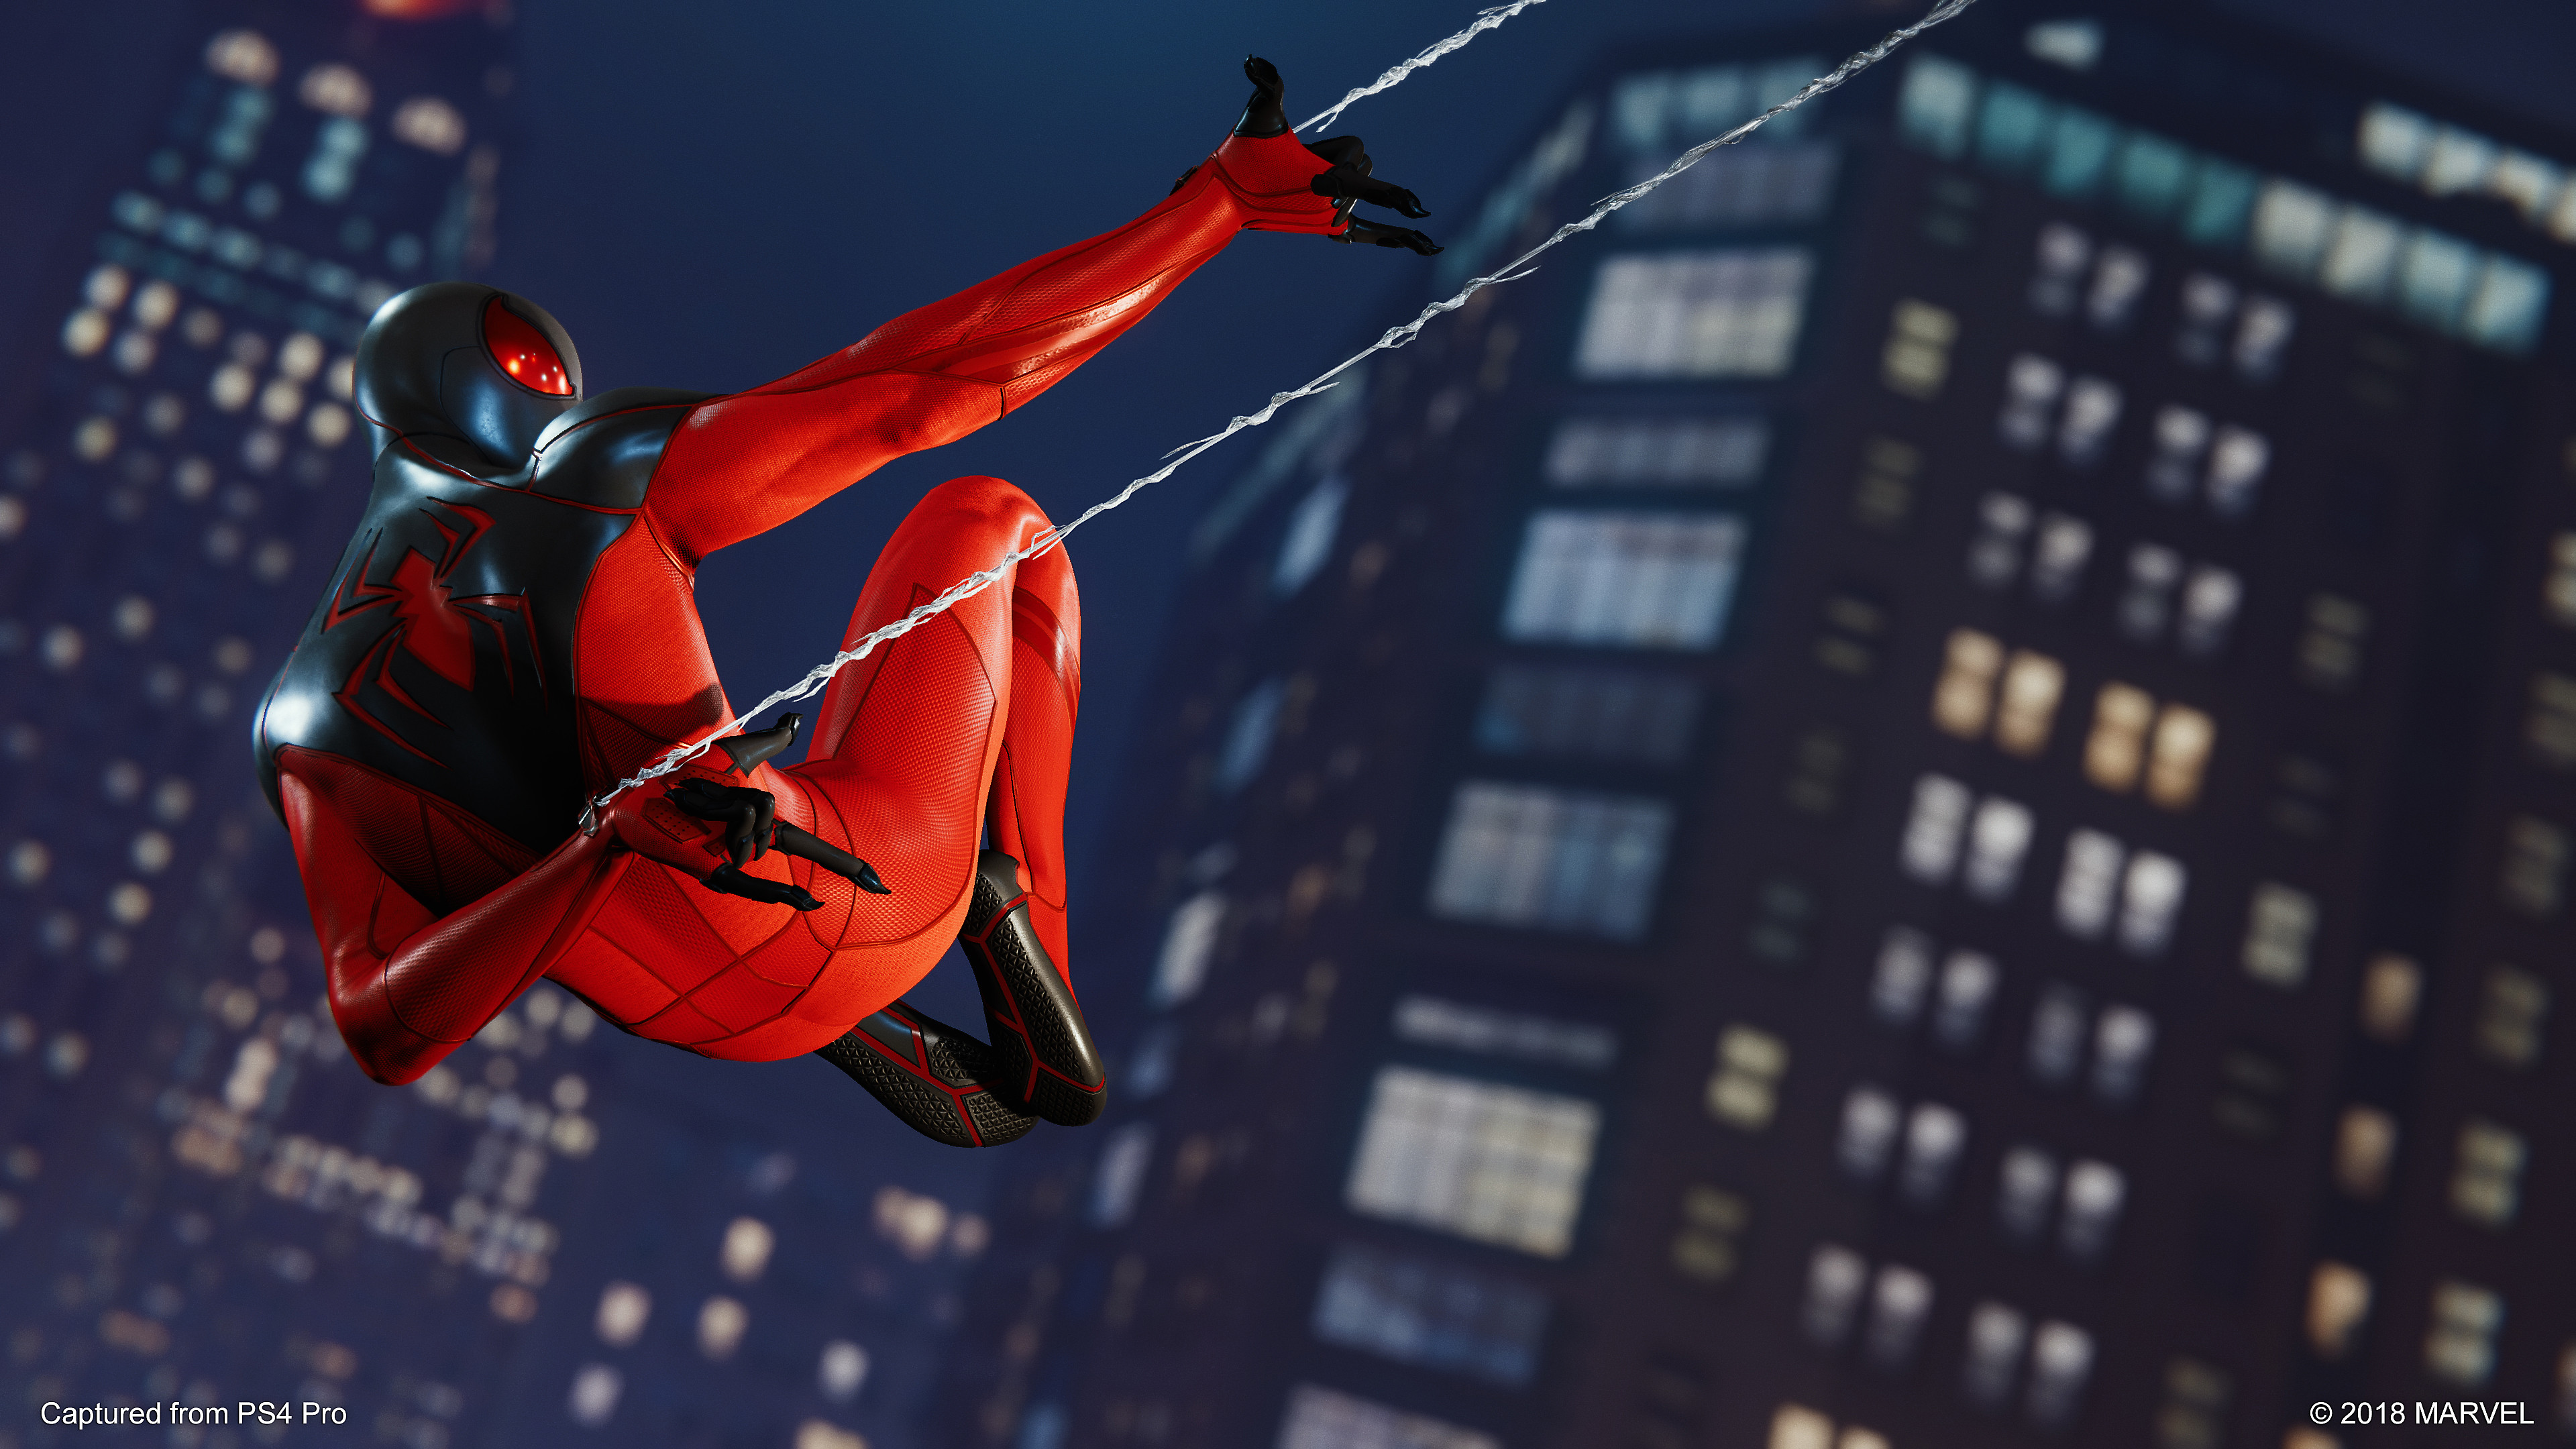 Marvel's Spider-Man - The Heist